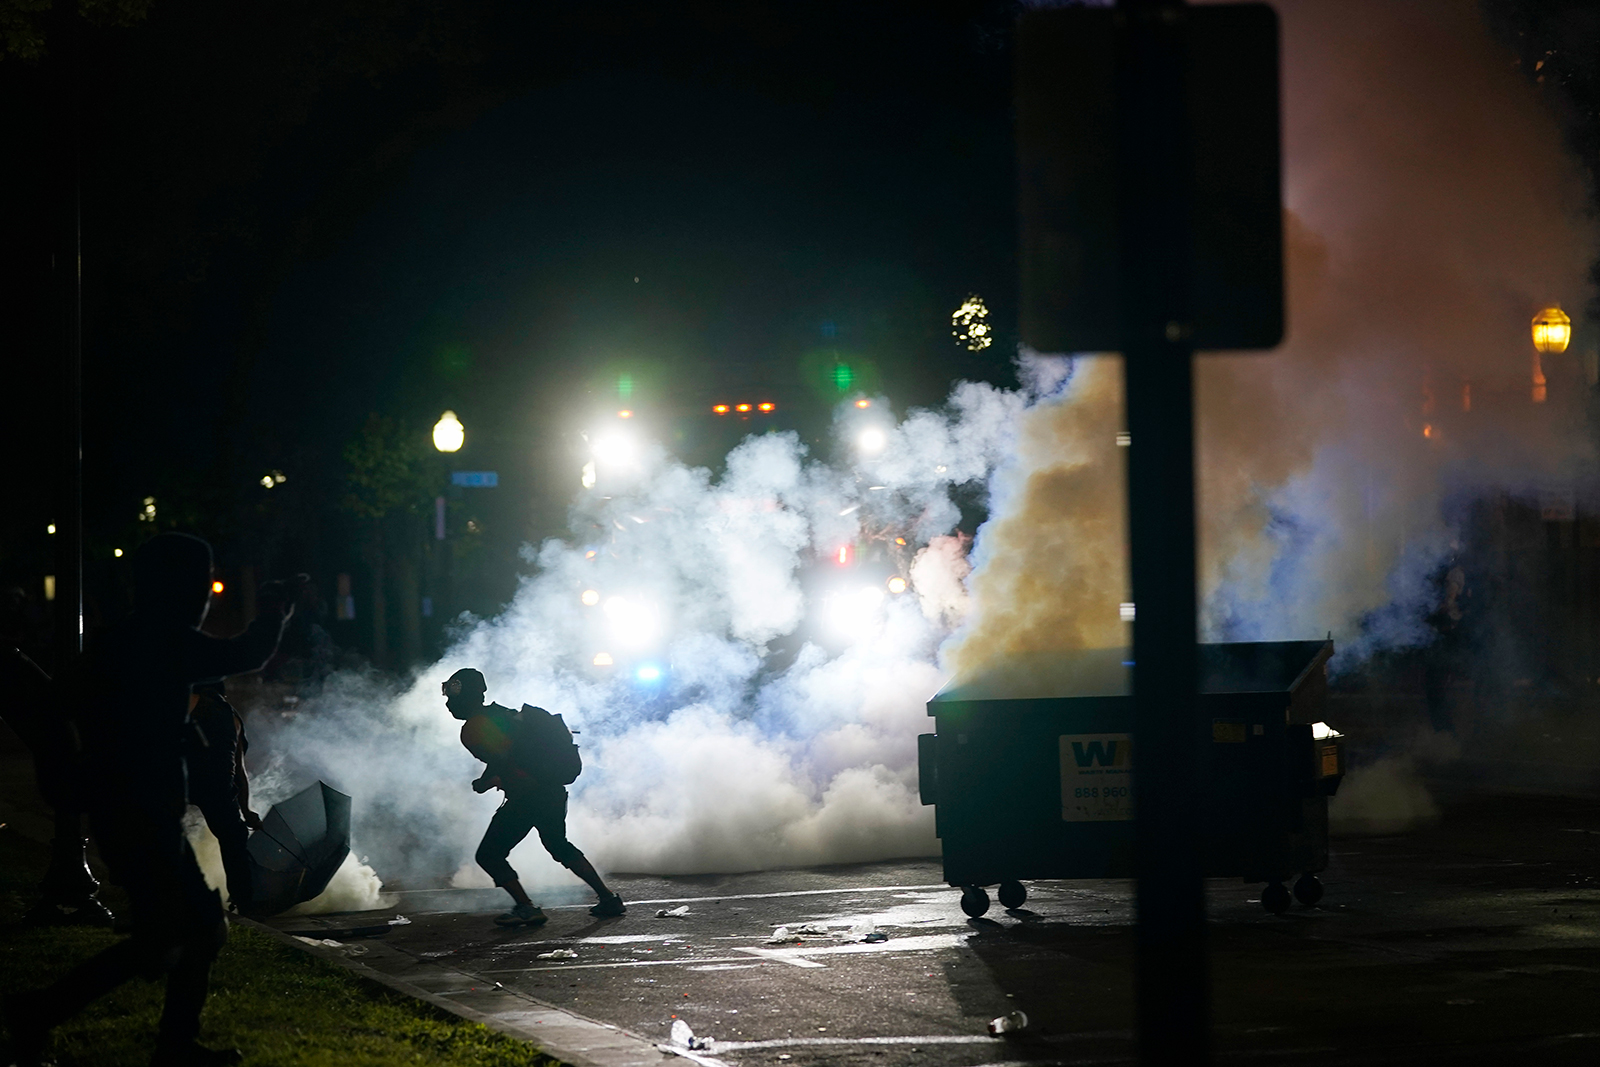 A protester moves away from a smoke canister late Tuesday.